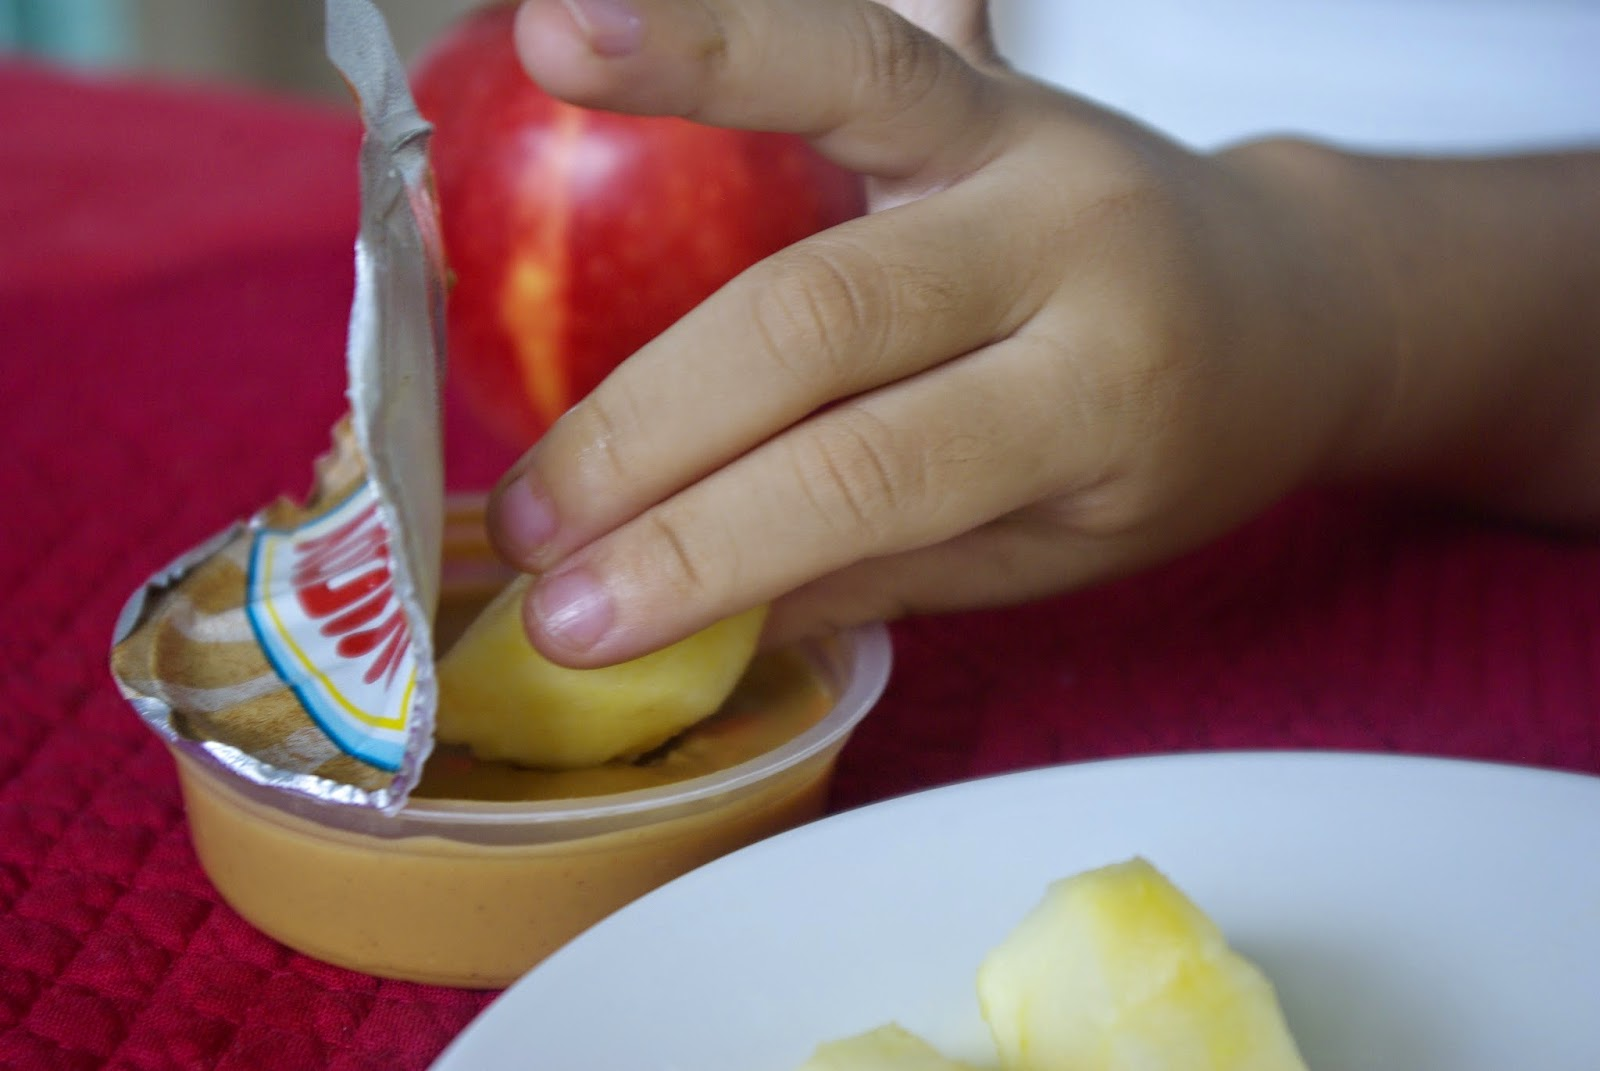 Dunk your fruits in the cup!